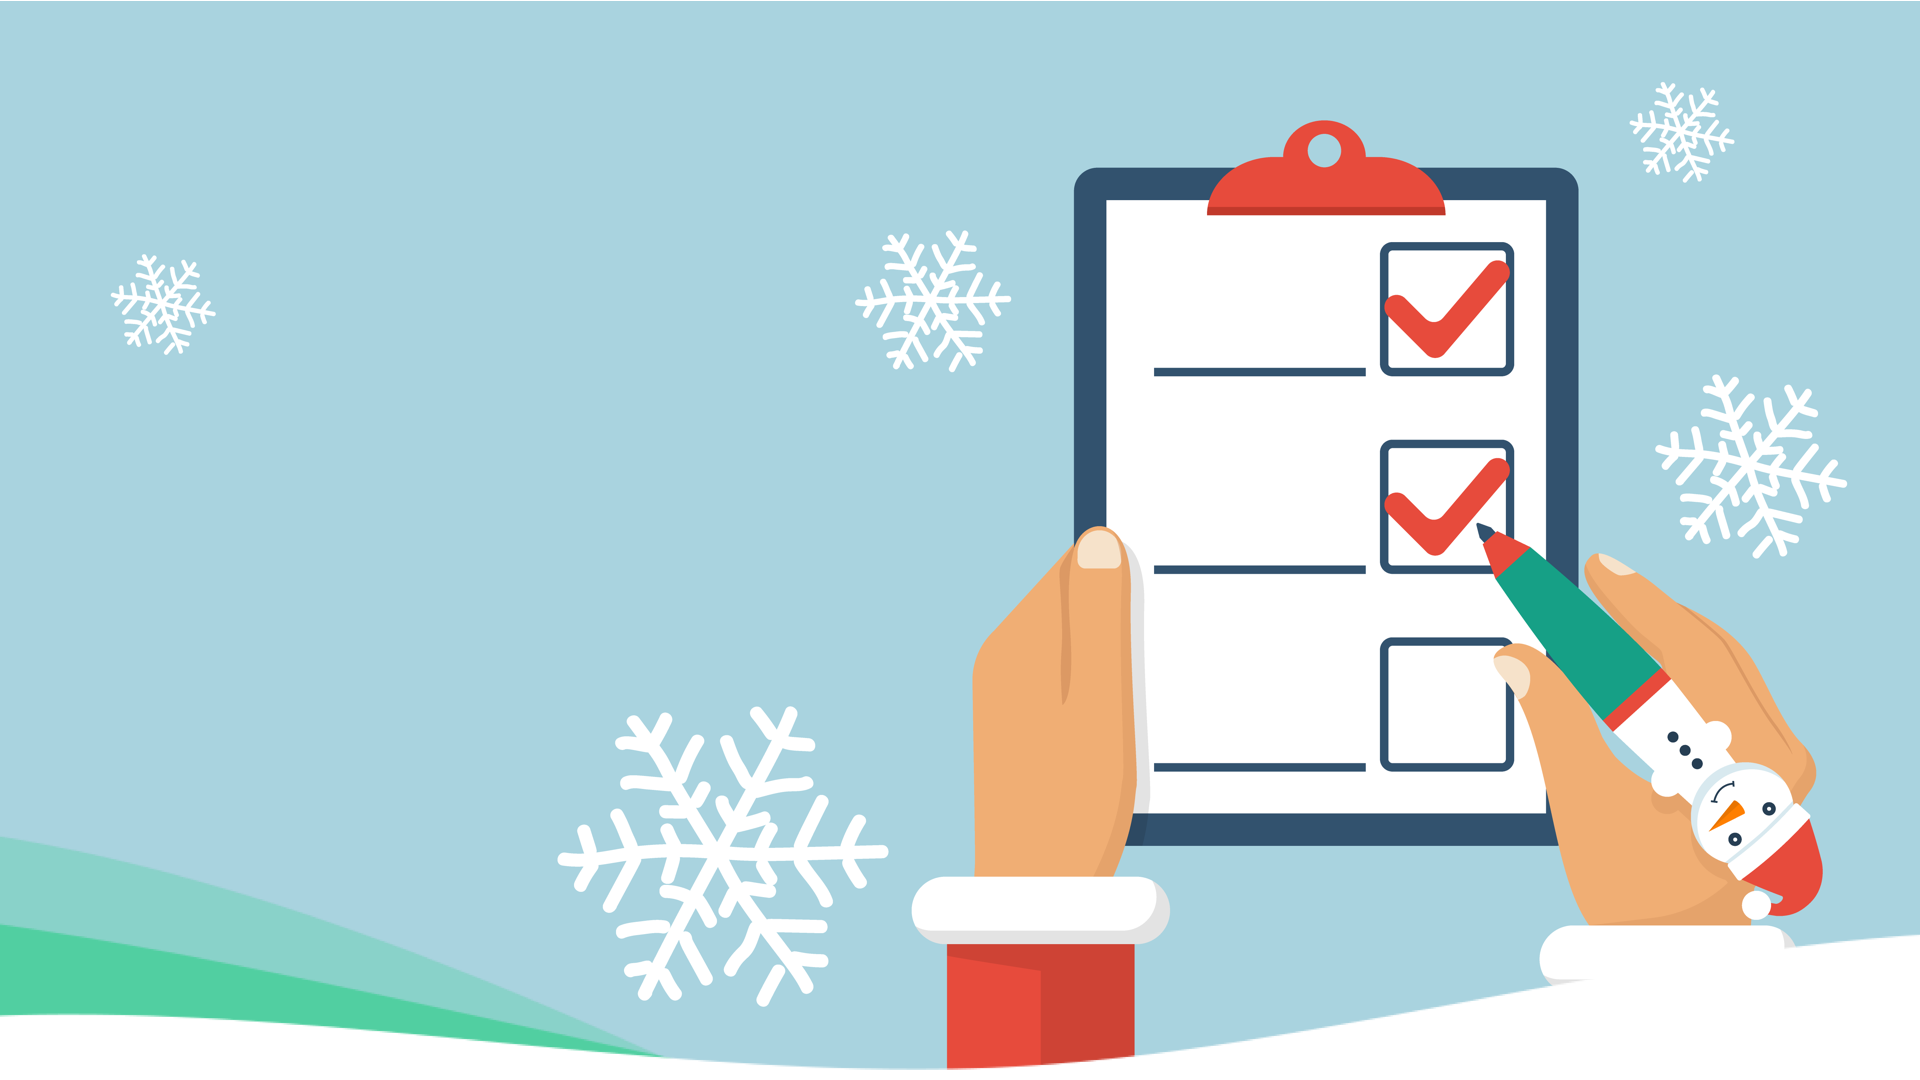 Blog ML Tame holiday stress with this easy checklist 12032018 2